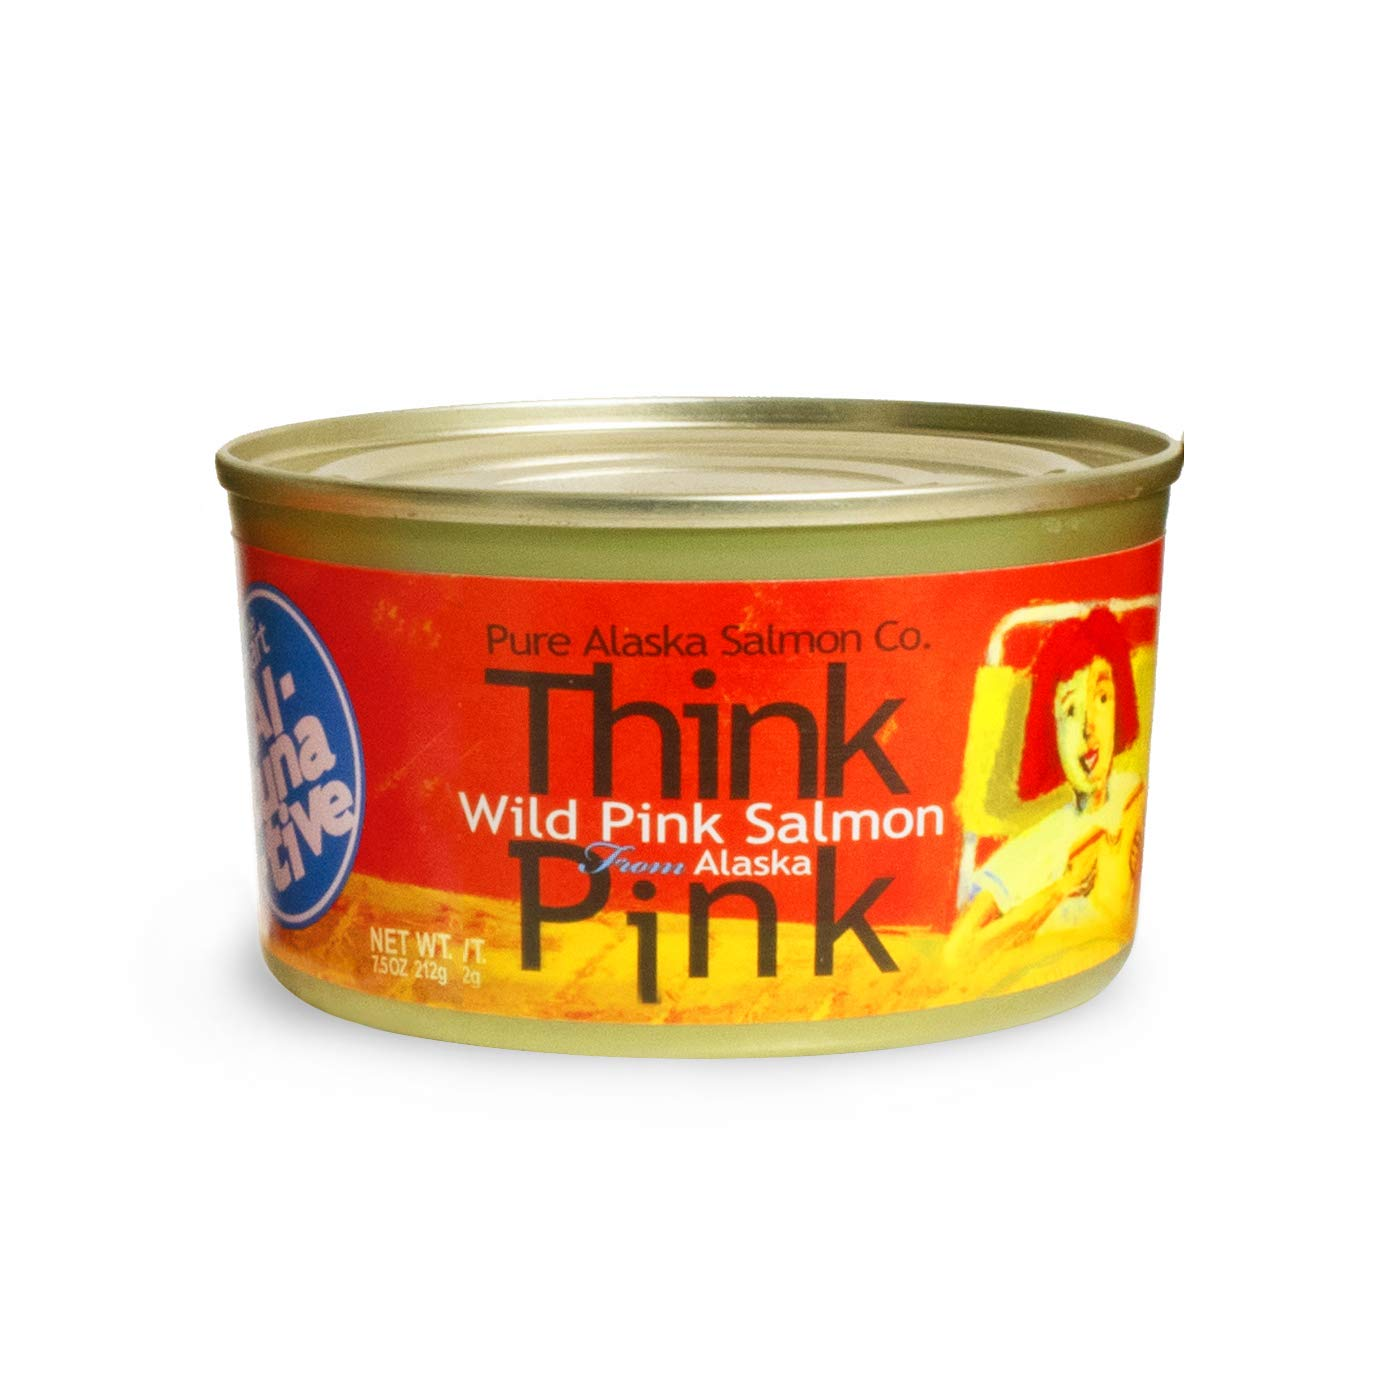 Think Pink Wild Alaska Pink Salmon -The Original Smart Al-TUNA-tive!, (12) 7.5 Oz. Cans